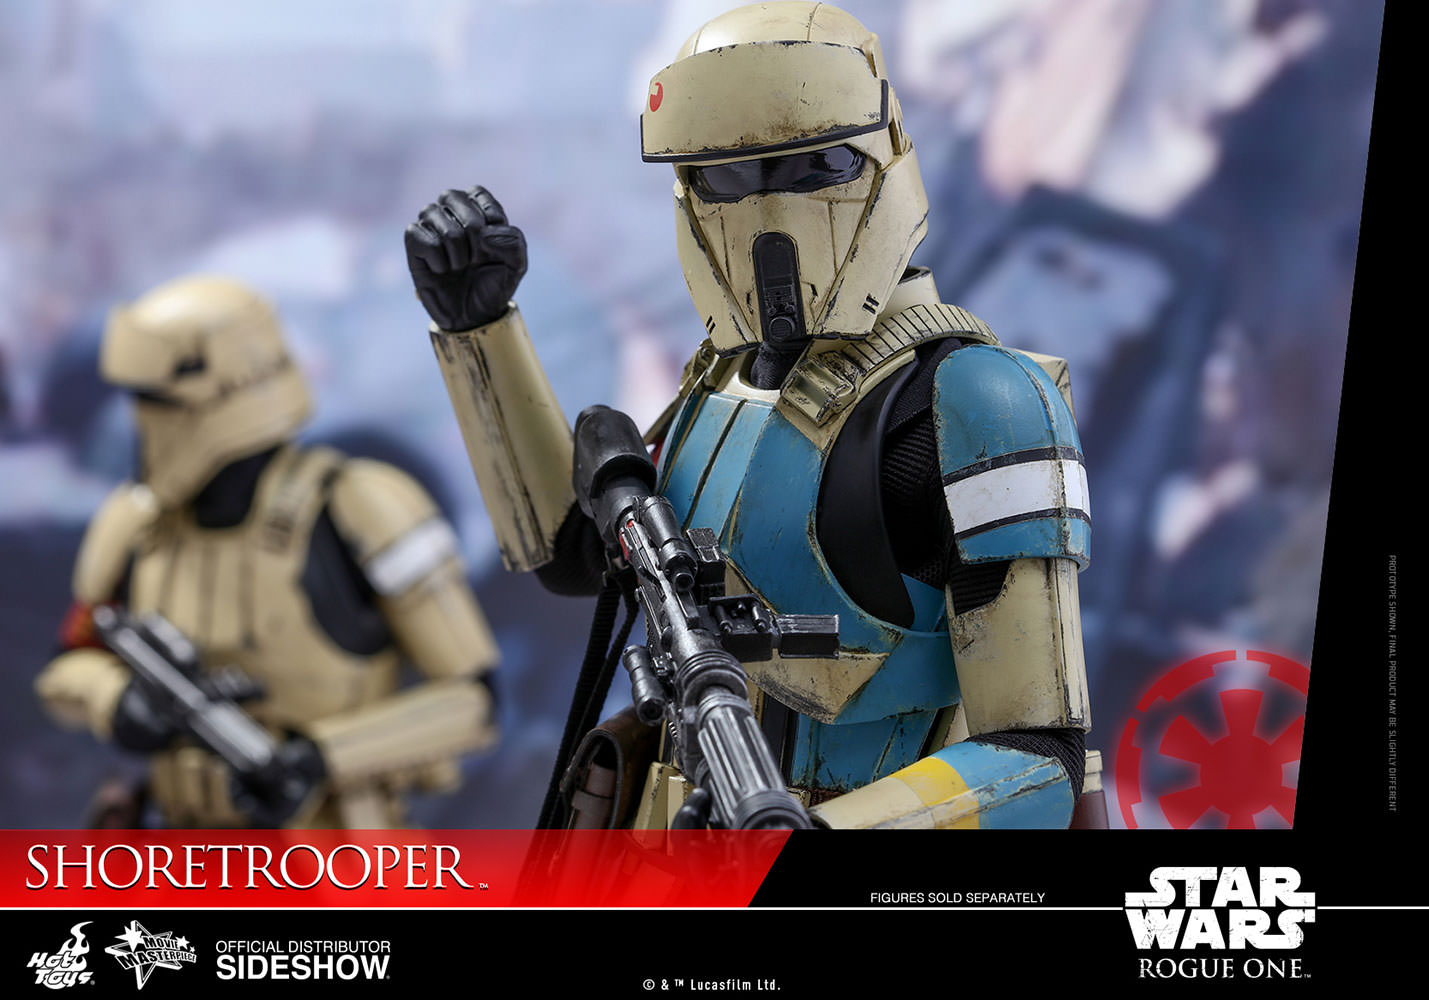 szmk_sideshow_star_wars_shoretrooper_5.jpg